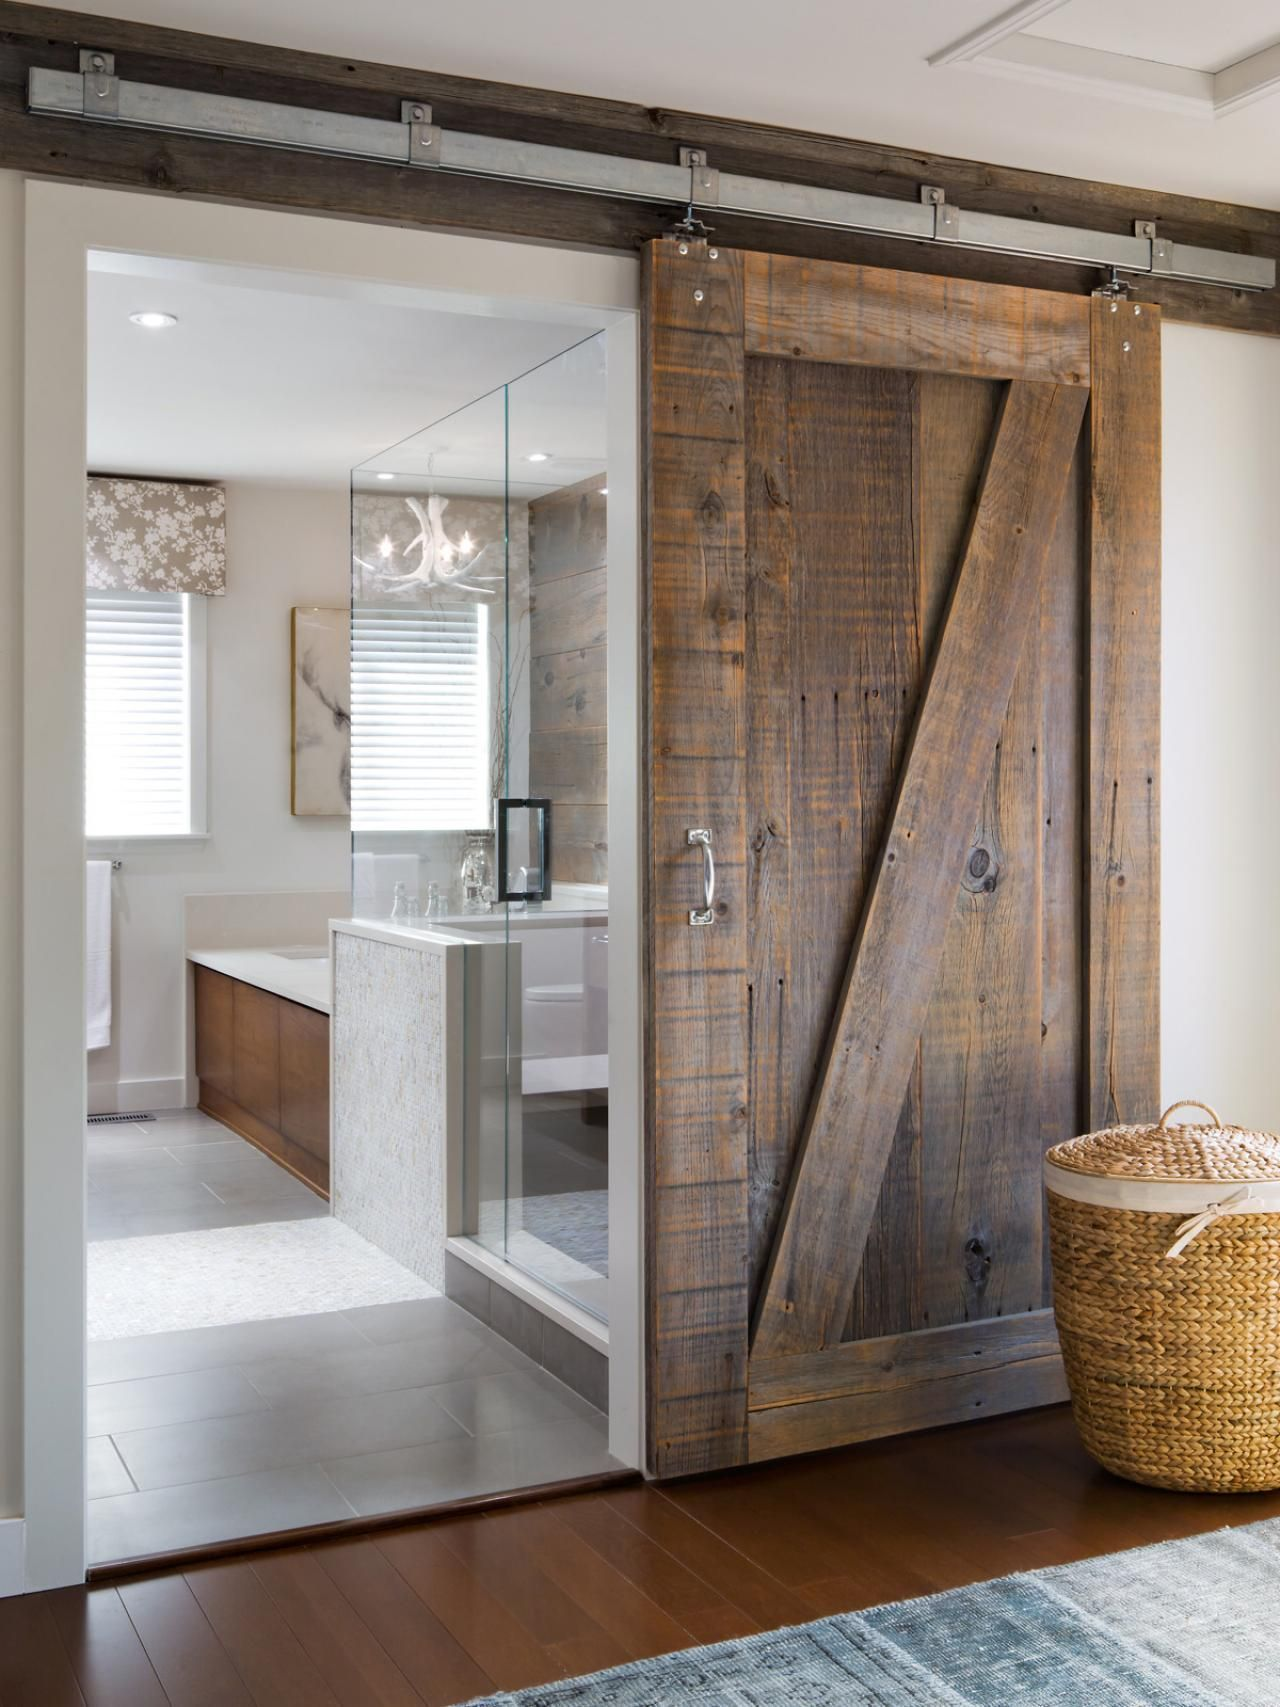 Barn door design ideas home remodeling ideas for basements home